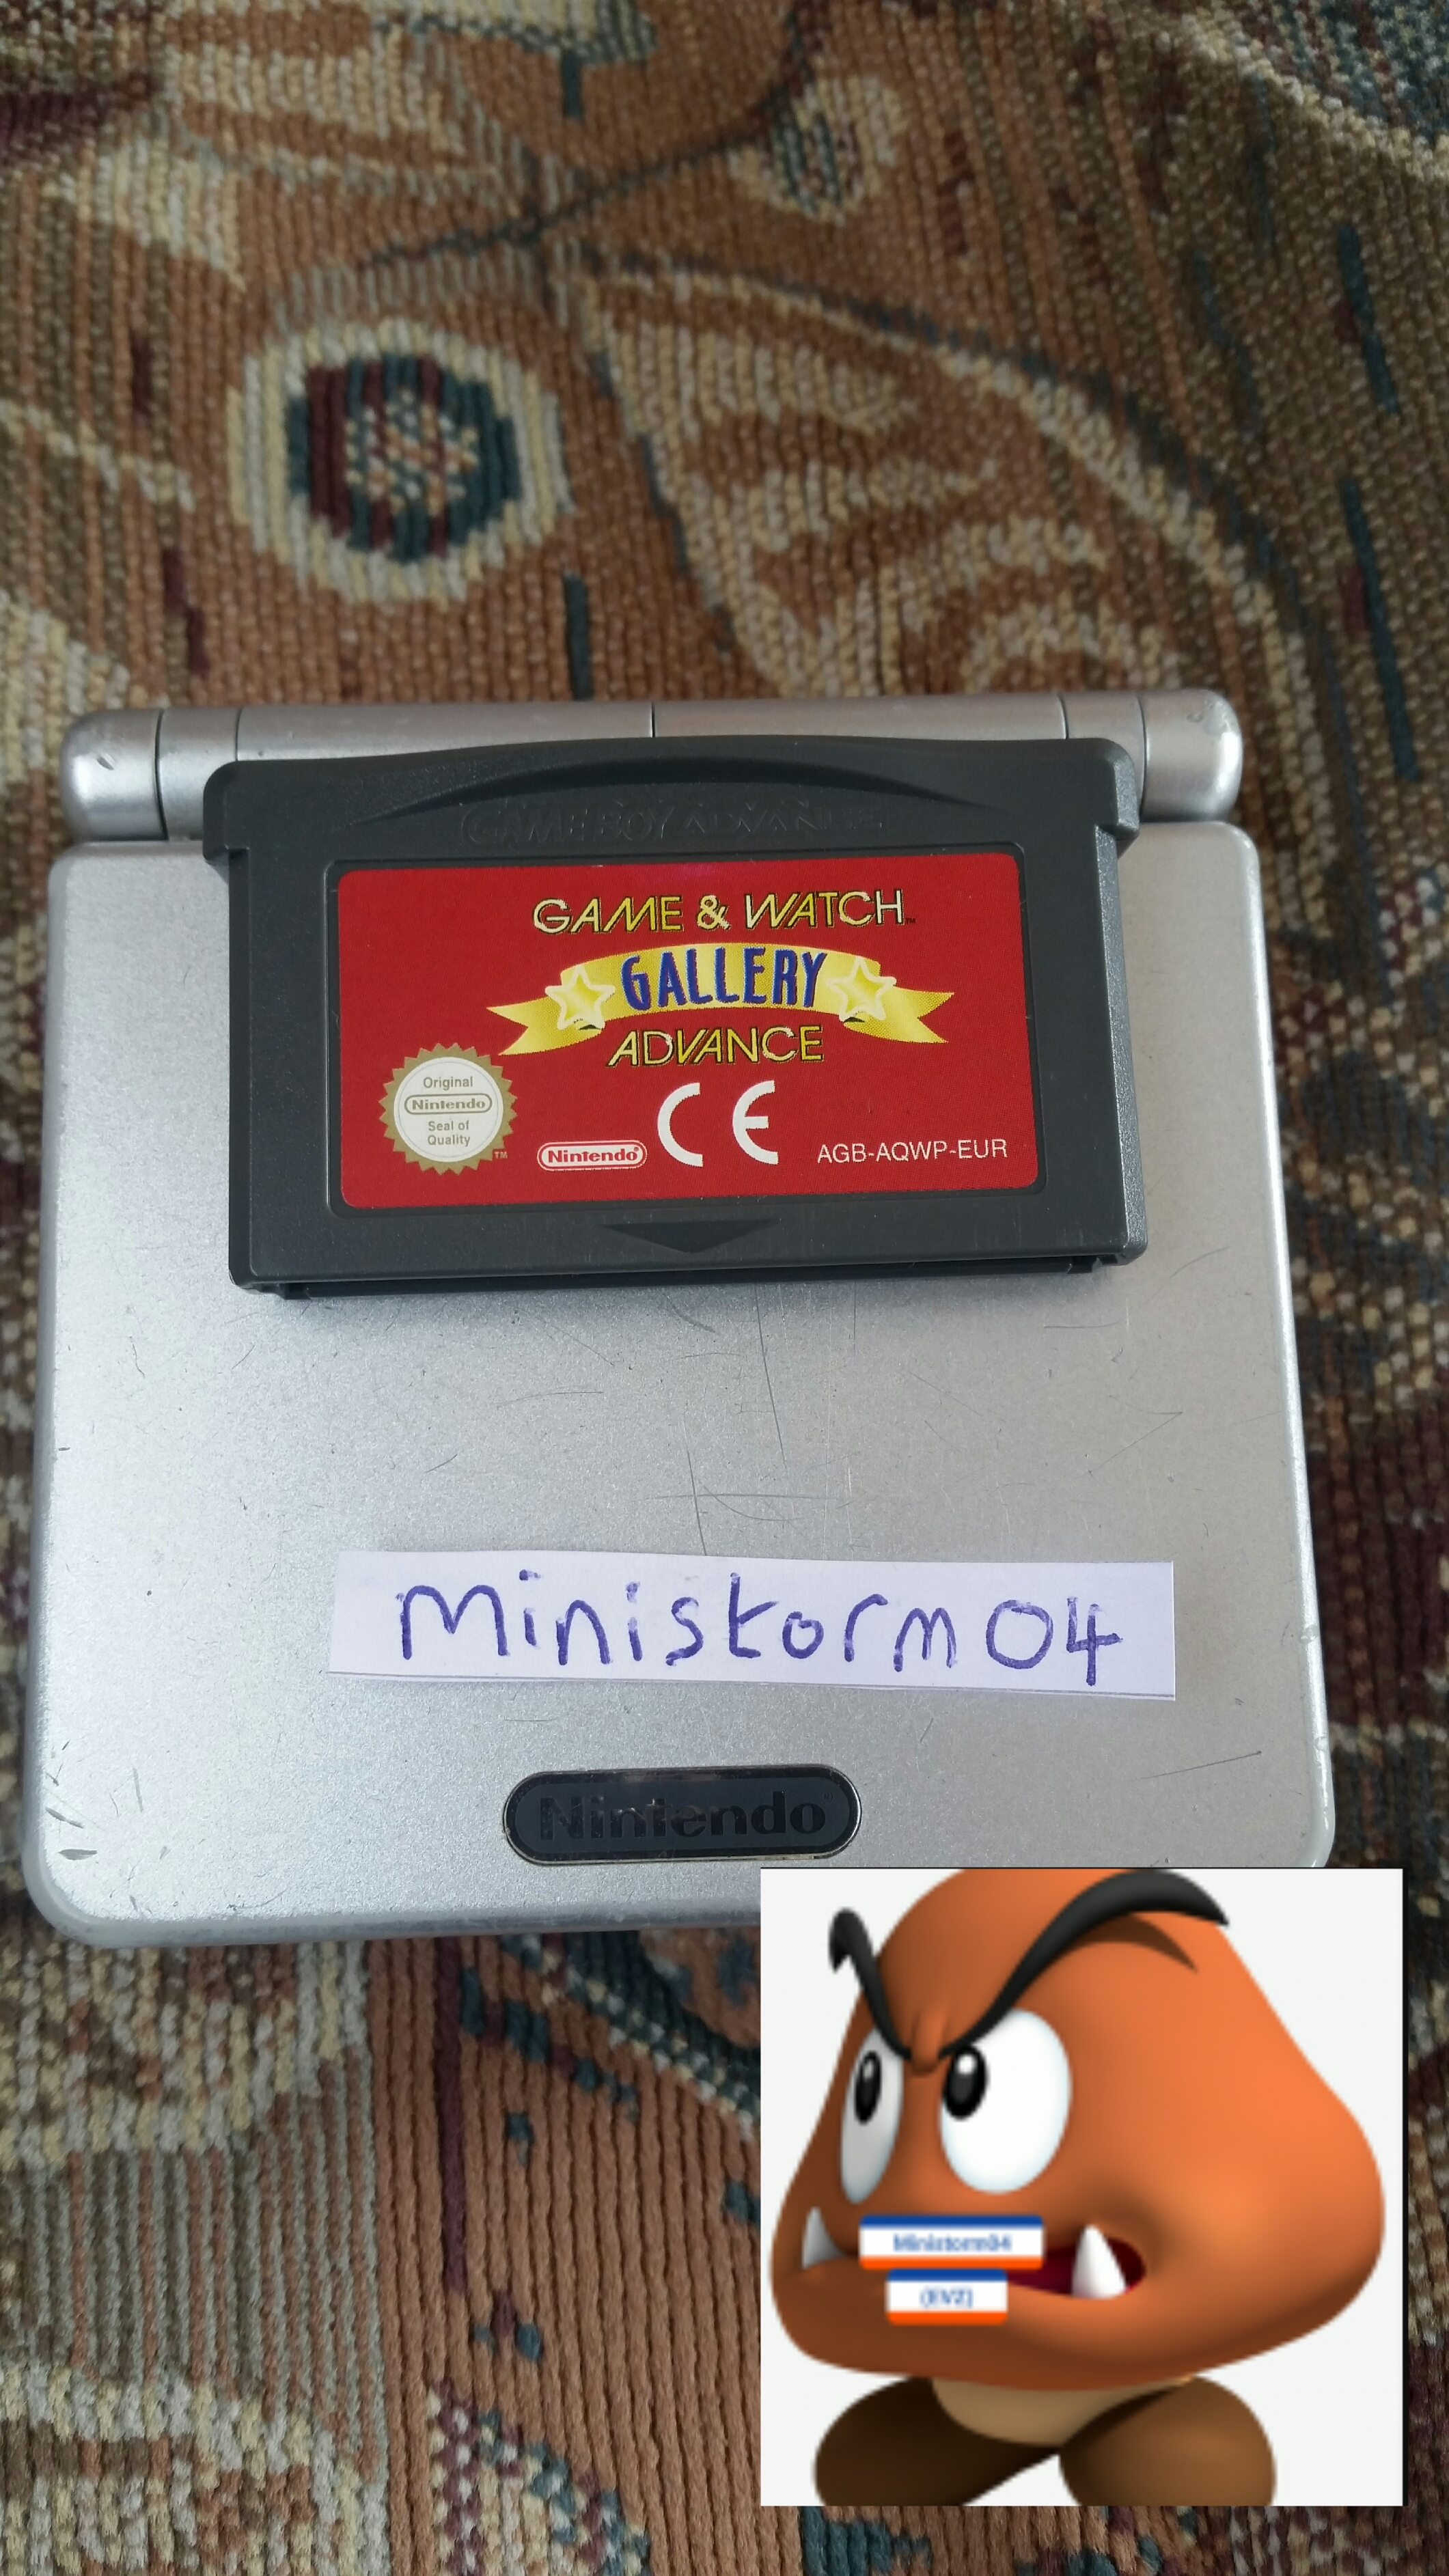 Game & Watch Gallery 4: Fire [Modern: Easy] 67 points